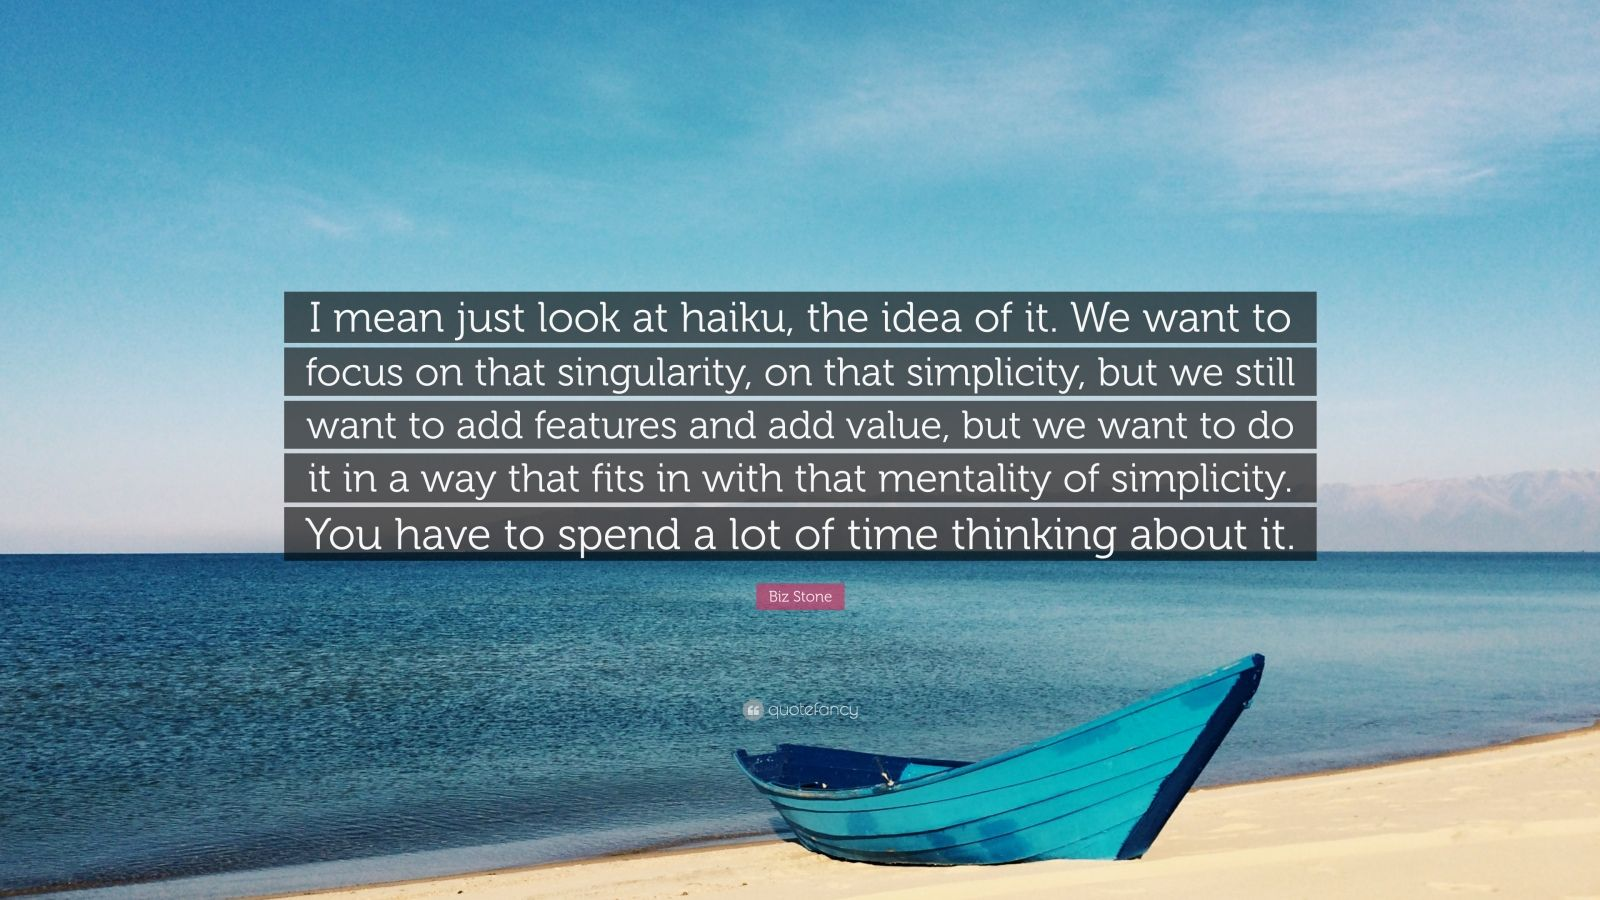 """Biz Stone Quote: """"I mean just look at haiku, the idea of it. We want to focus on that singularity, on that simplicity, but we still want to add features and add value, but we want to do it in a way that fits in with that mentality of simplicity. You have to spend a lot of time thinking about it."""""""